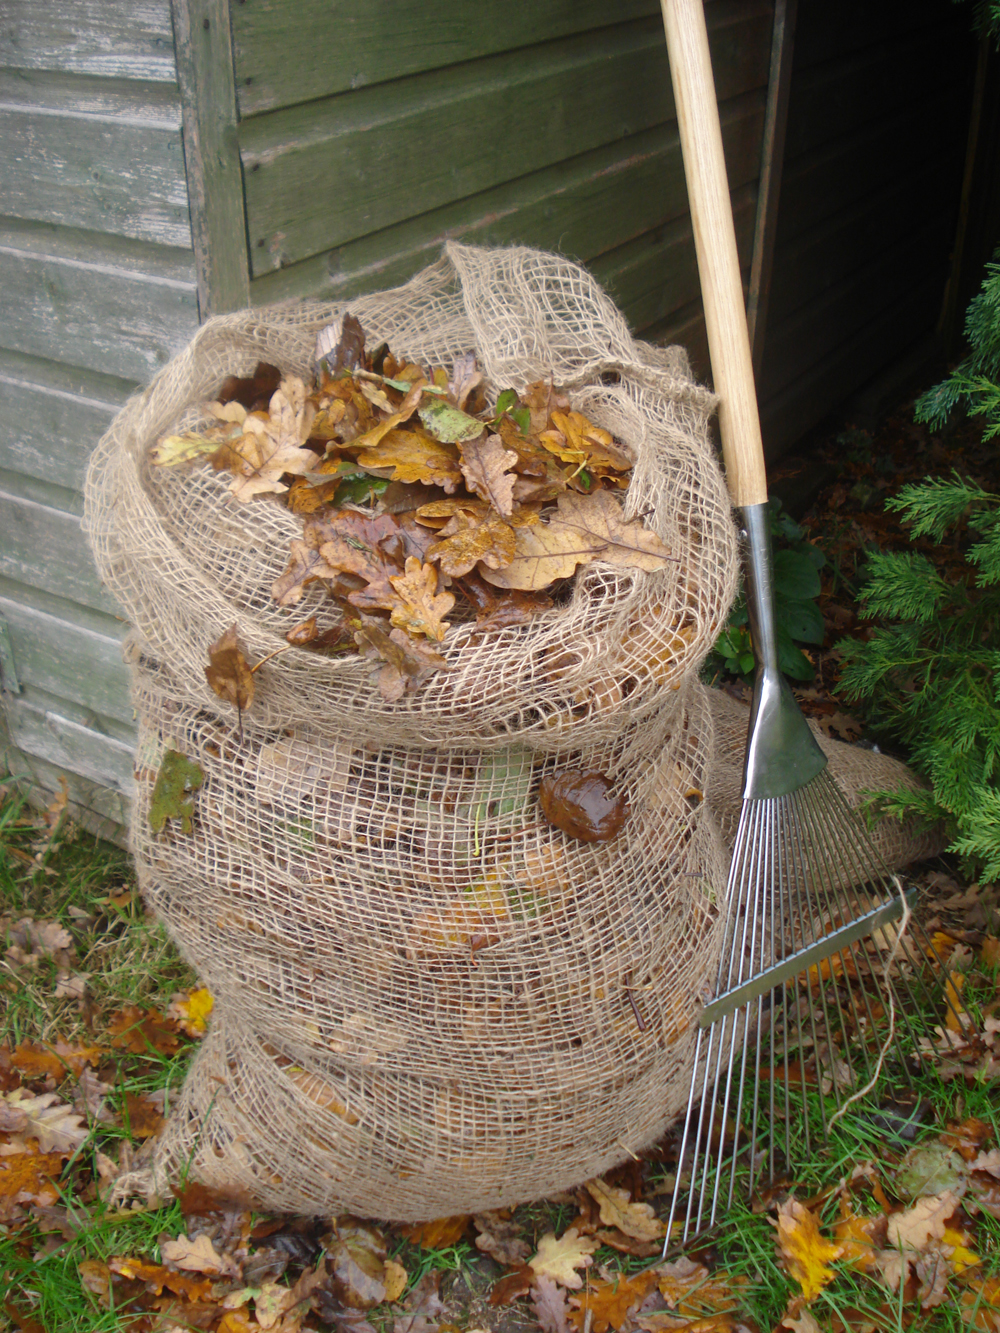 Leaf composting sacks (Burgon and Ball/PA)